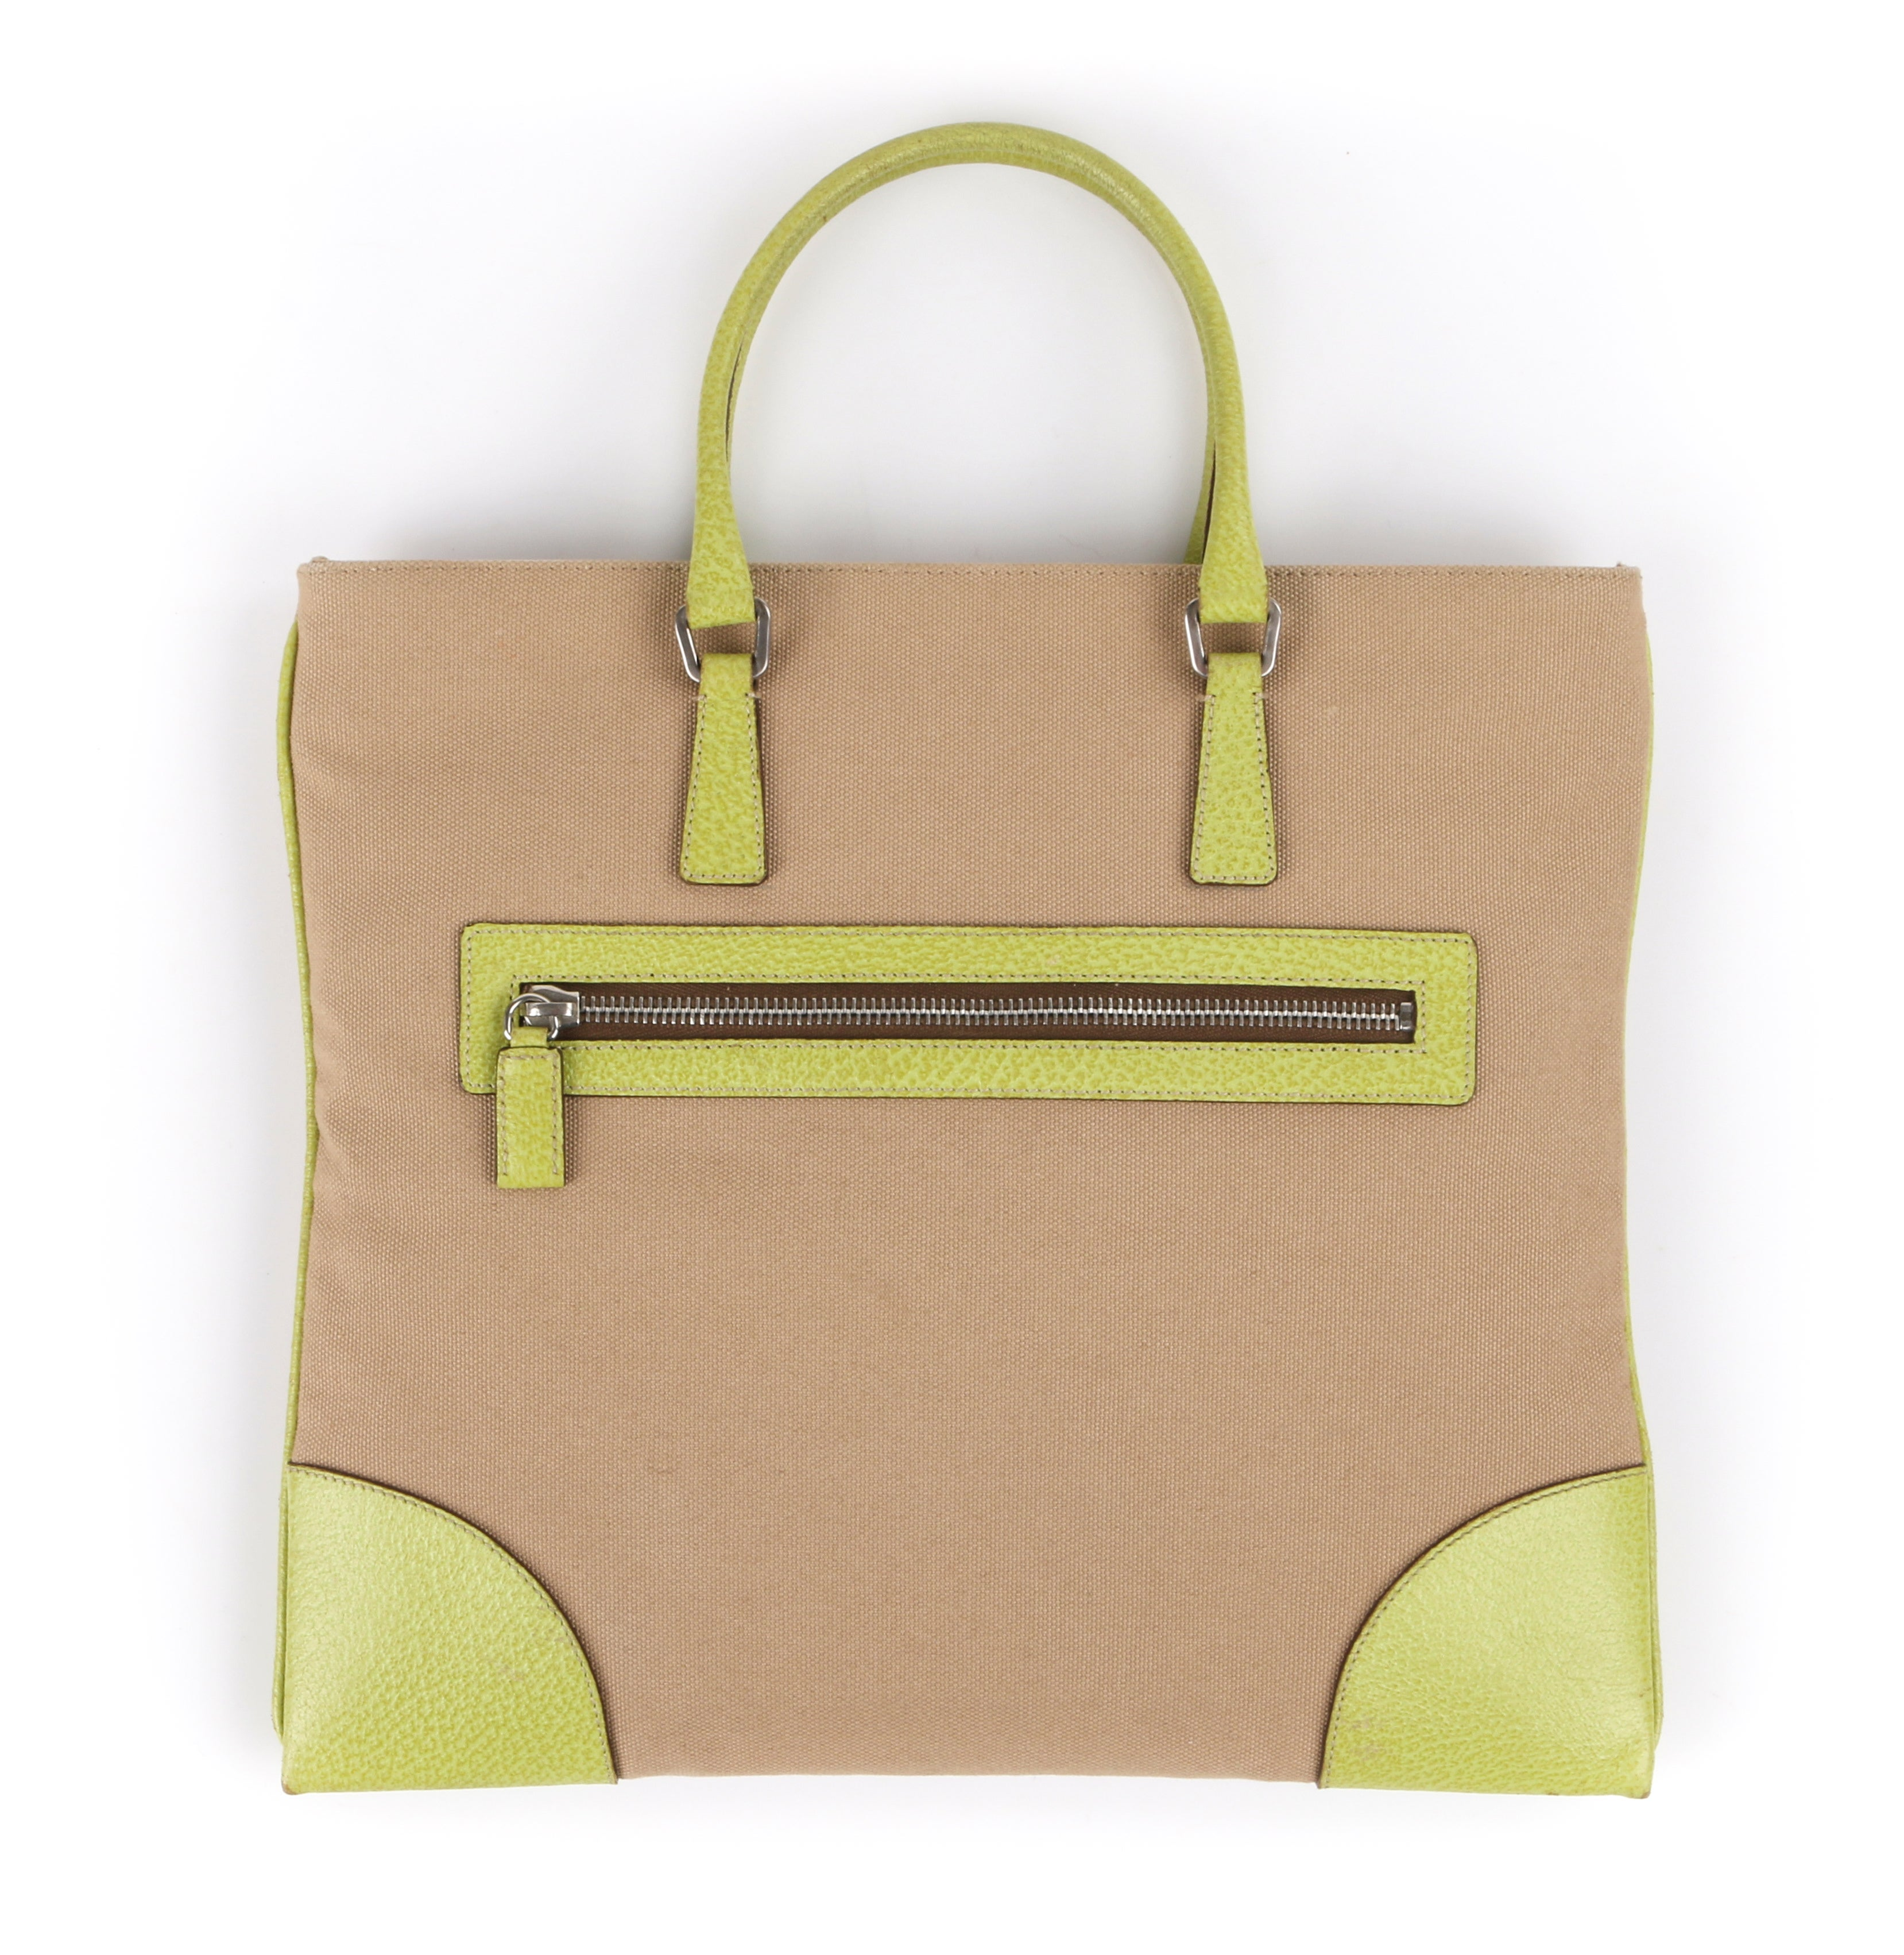 dd447337144c PRADA Khaki Canapa Canvas and Chartreuse Green Leather Tote Bag Purse For  Sale at 1stdibs